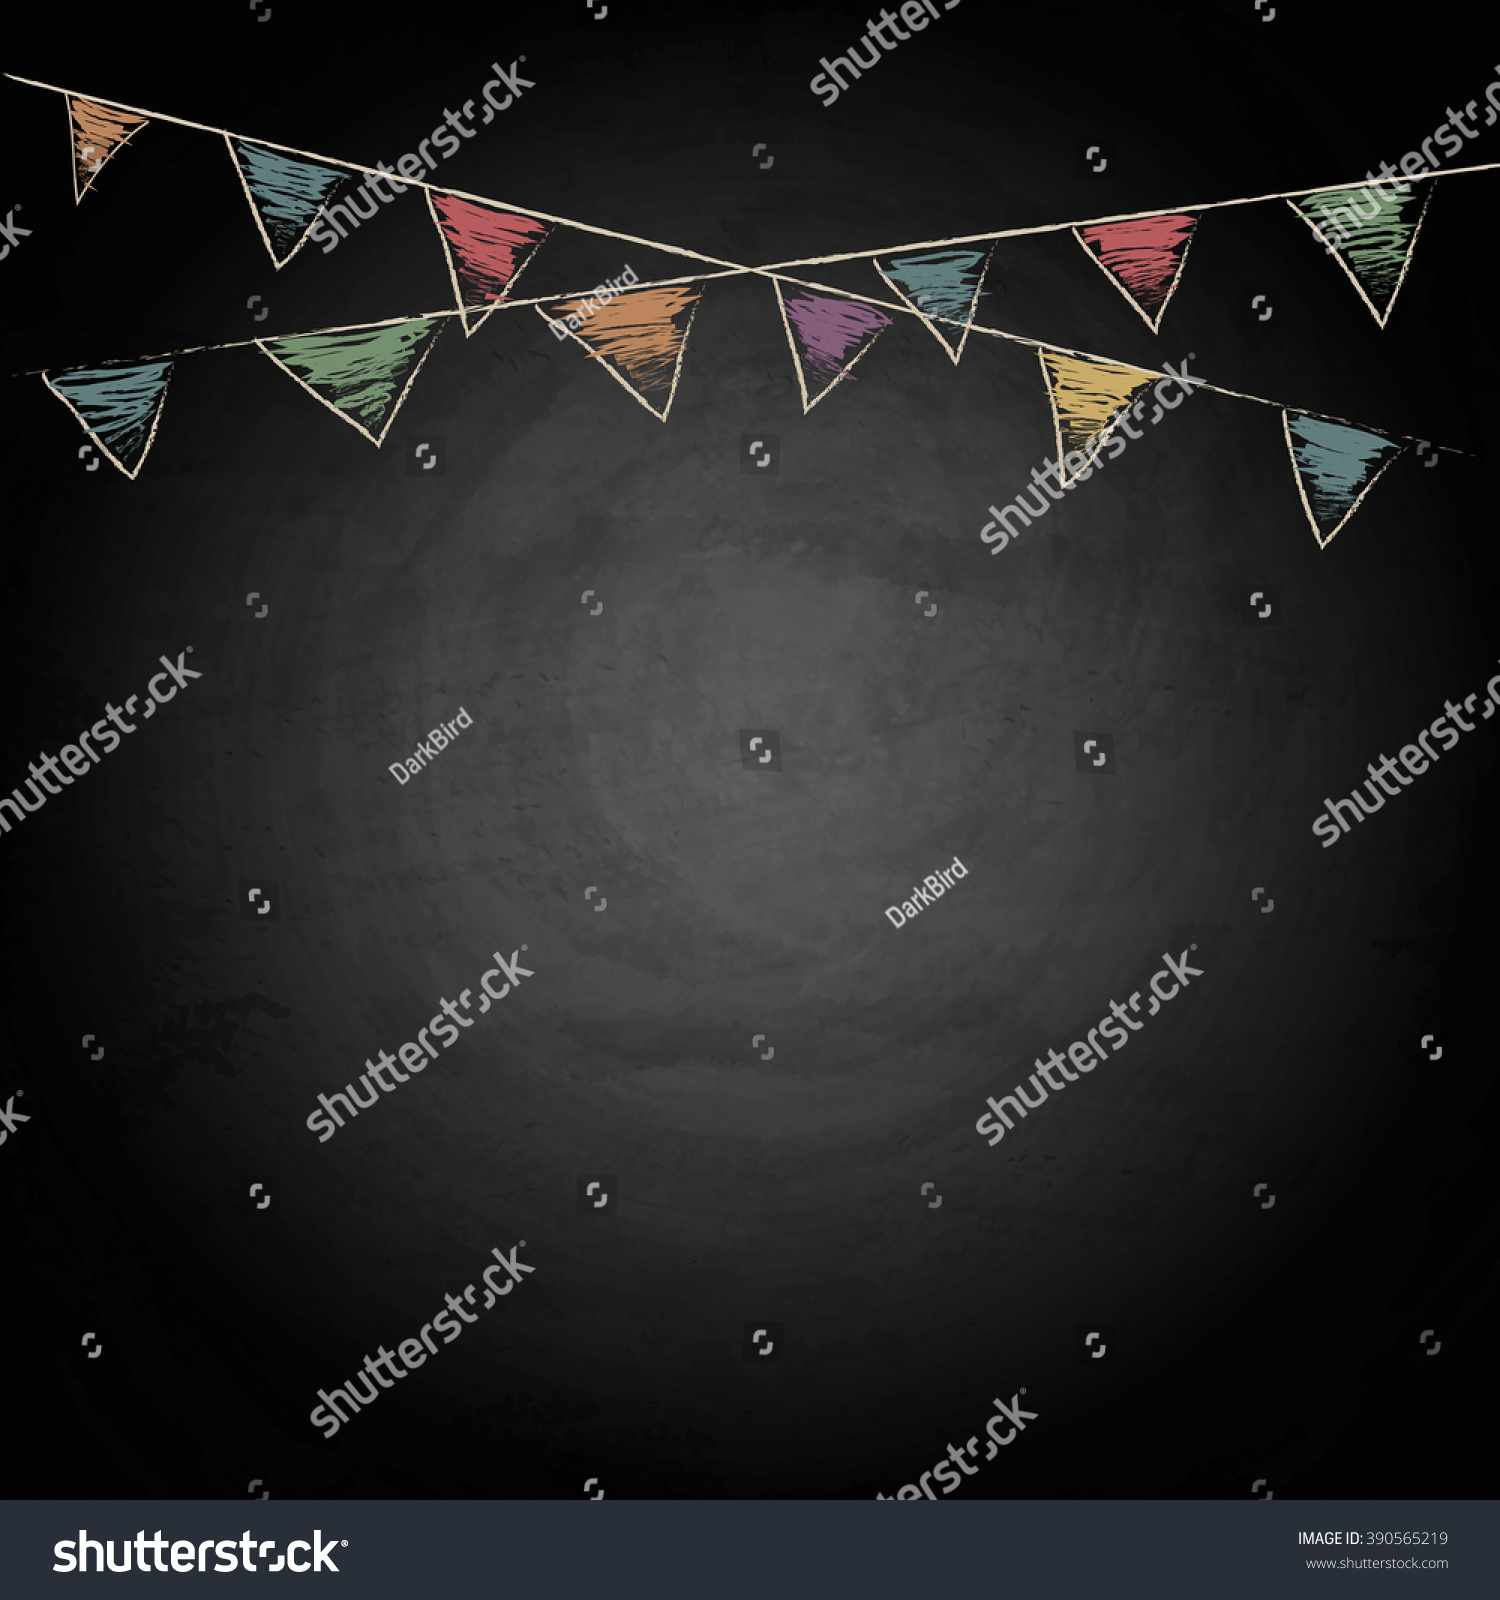 royalty free chalkboard background with drawing 390565219 stock